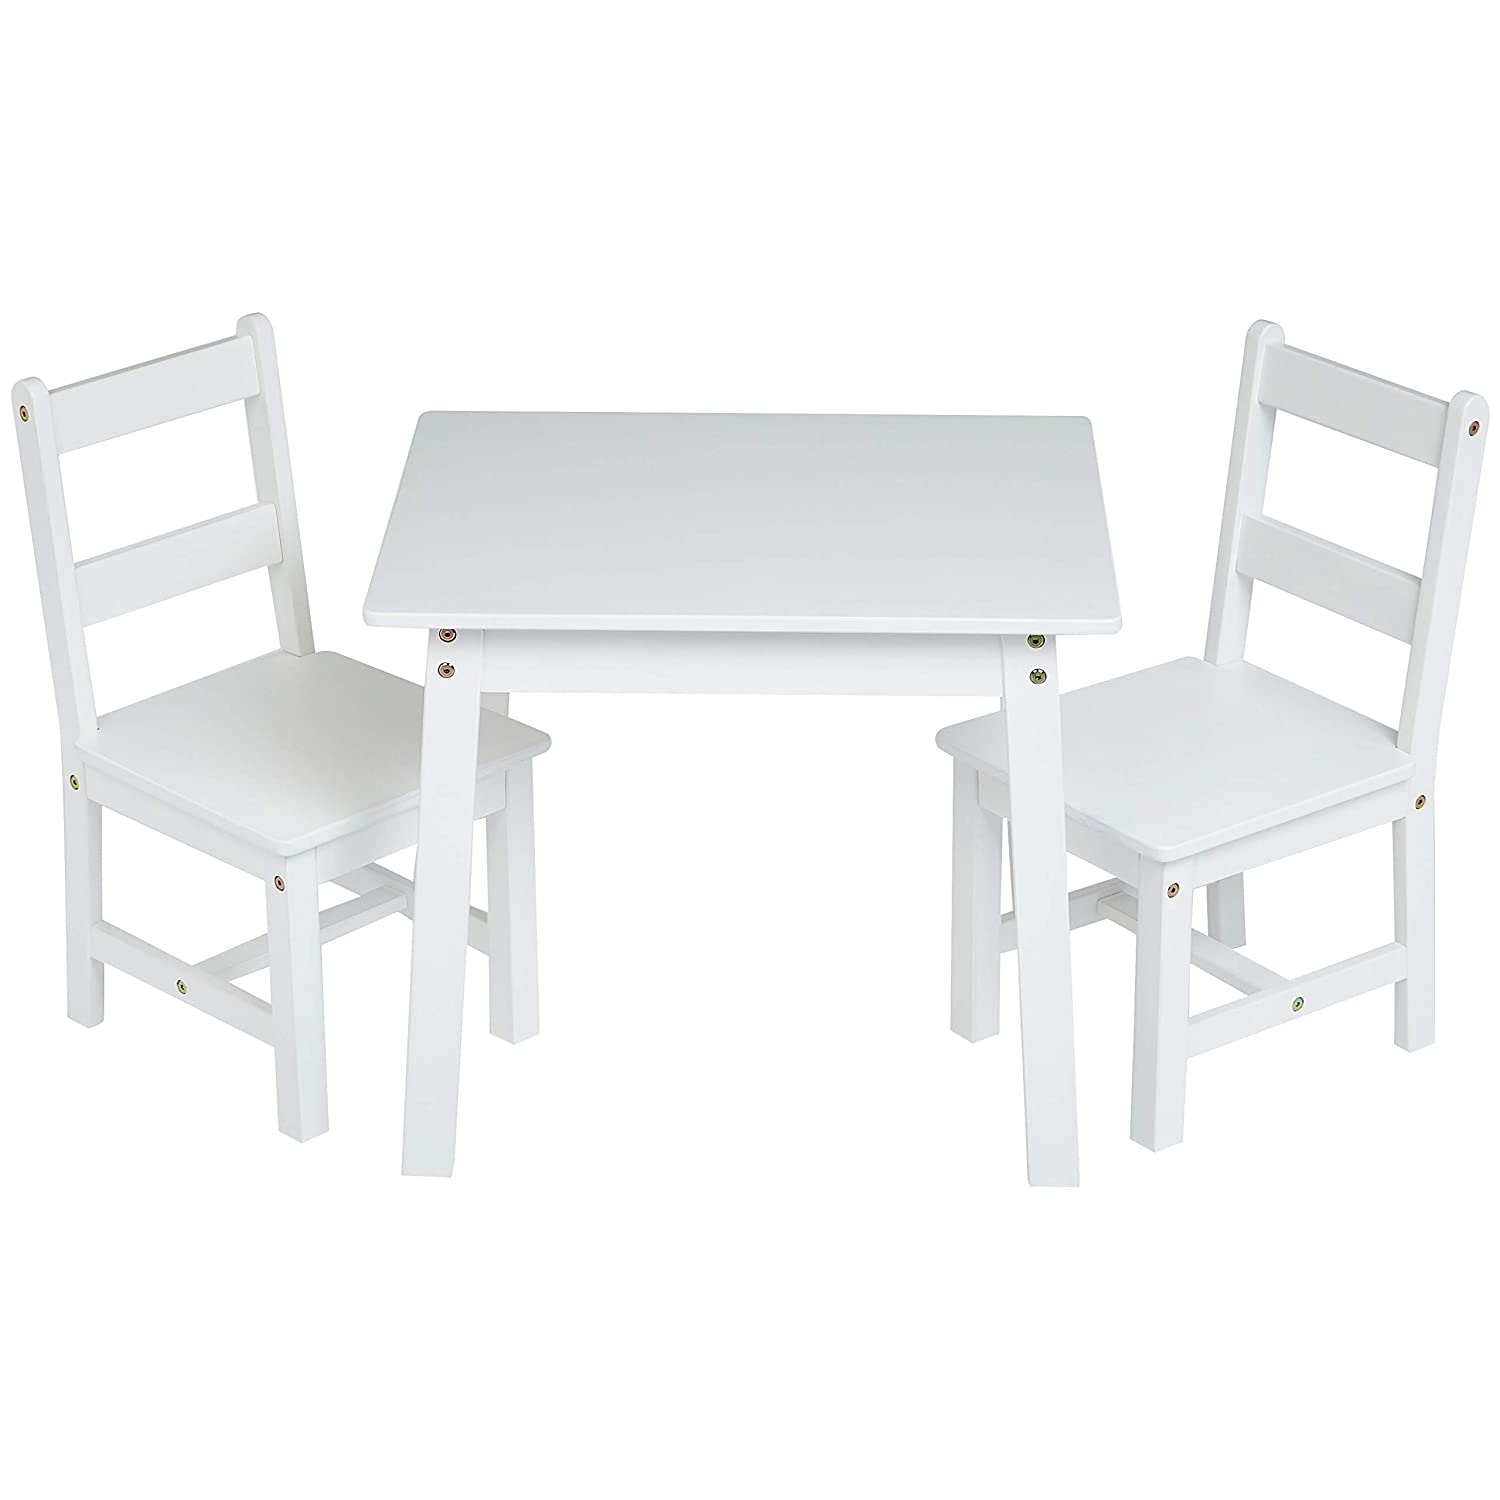 AmazonBasics Kids' Solid Wood Table and 2 Chairs Set, White